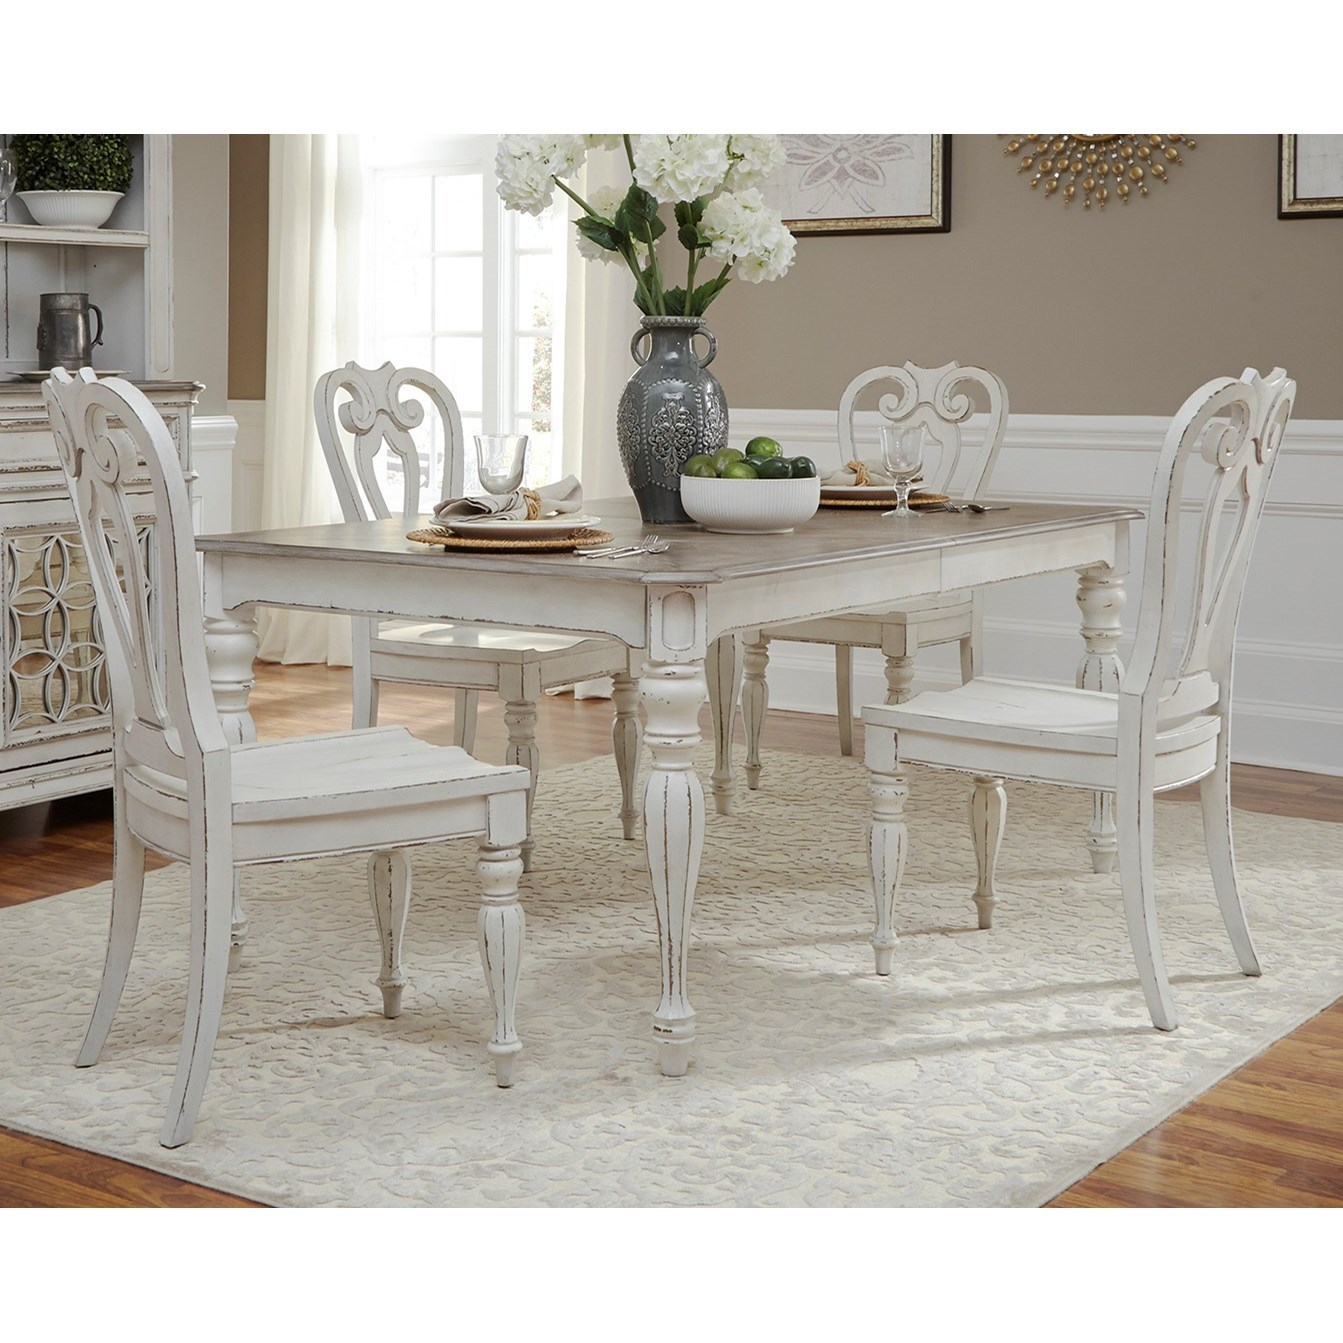 Magnolia Manor Dining Opt 5 Piece Rectangular Table Set  by Liberty Furniture at Northeast Factory Direct